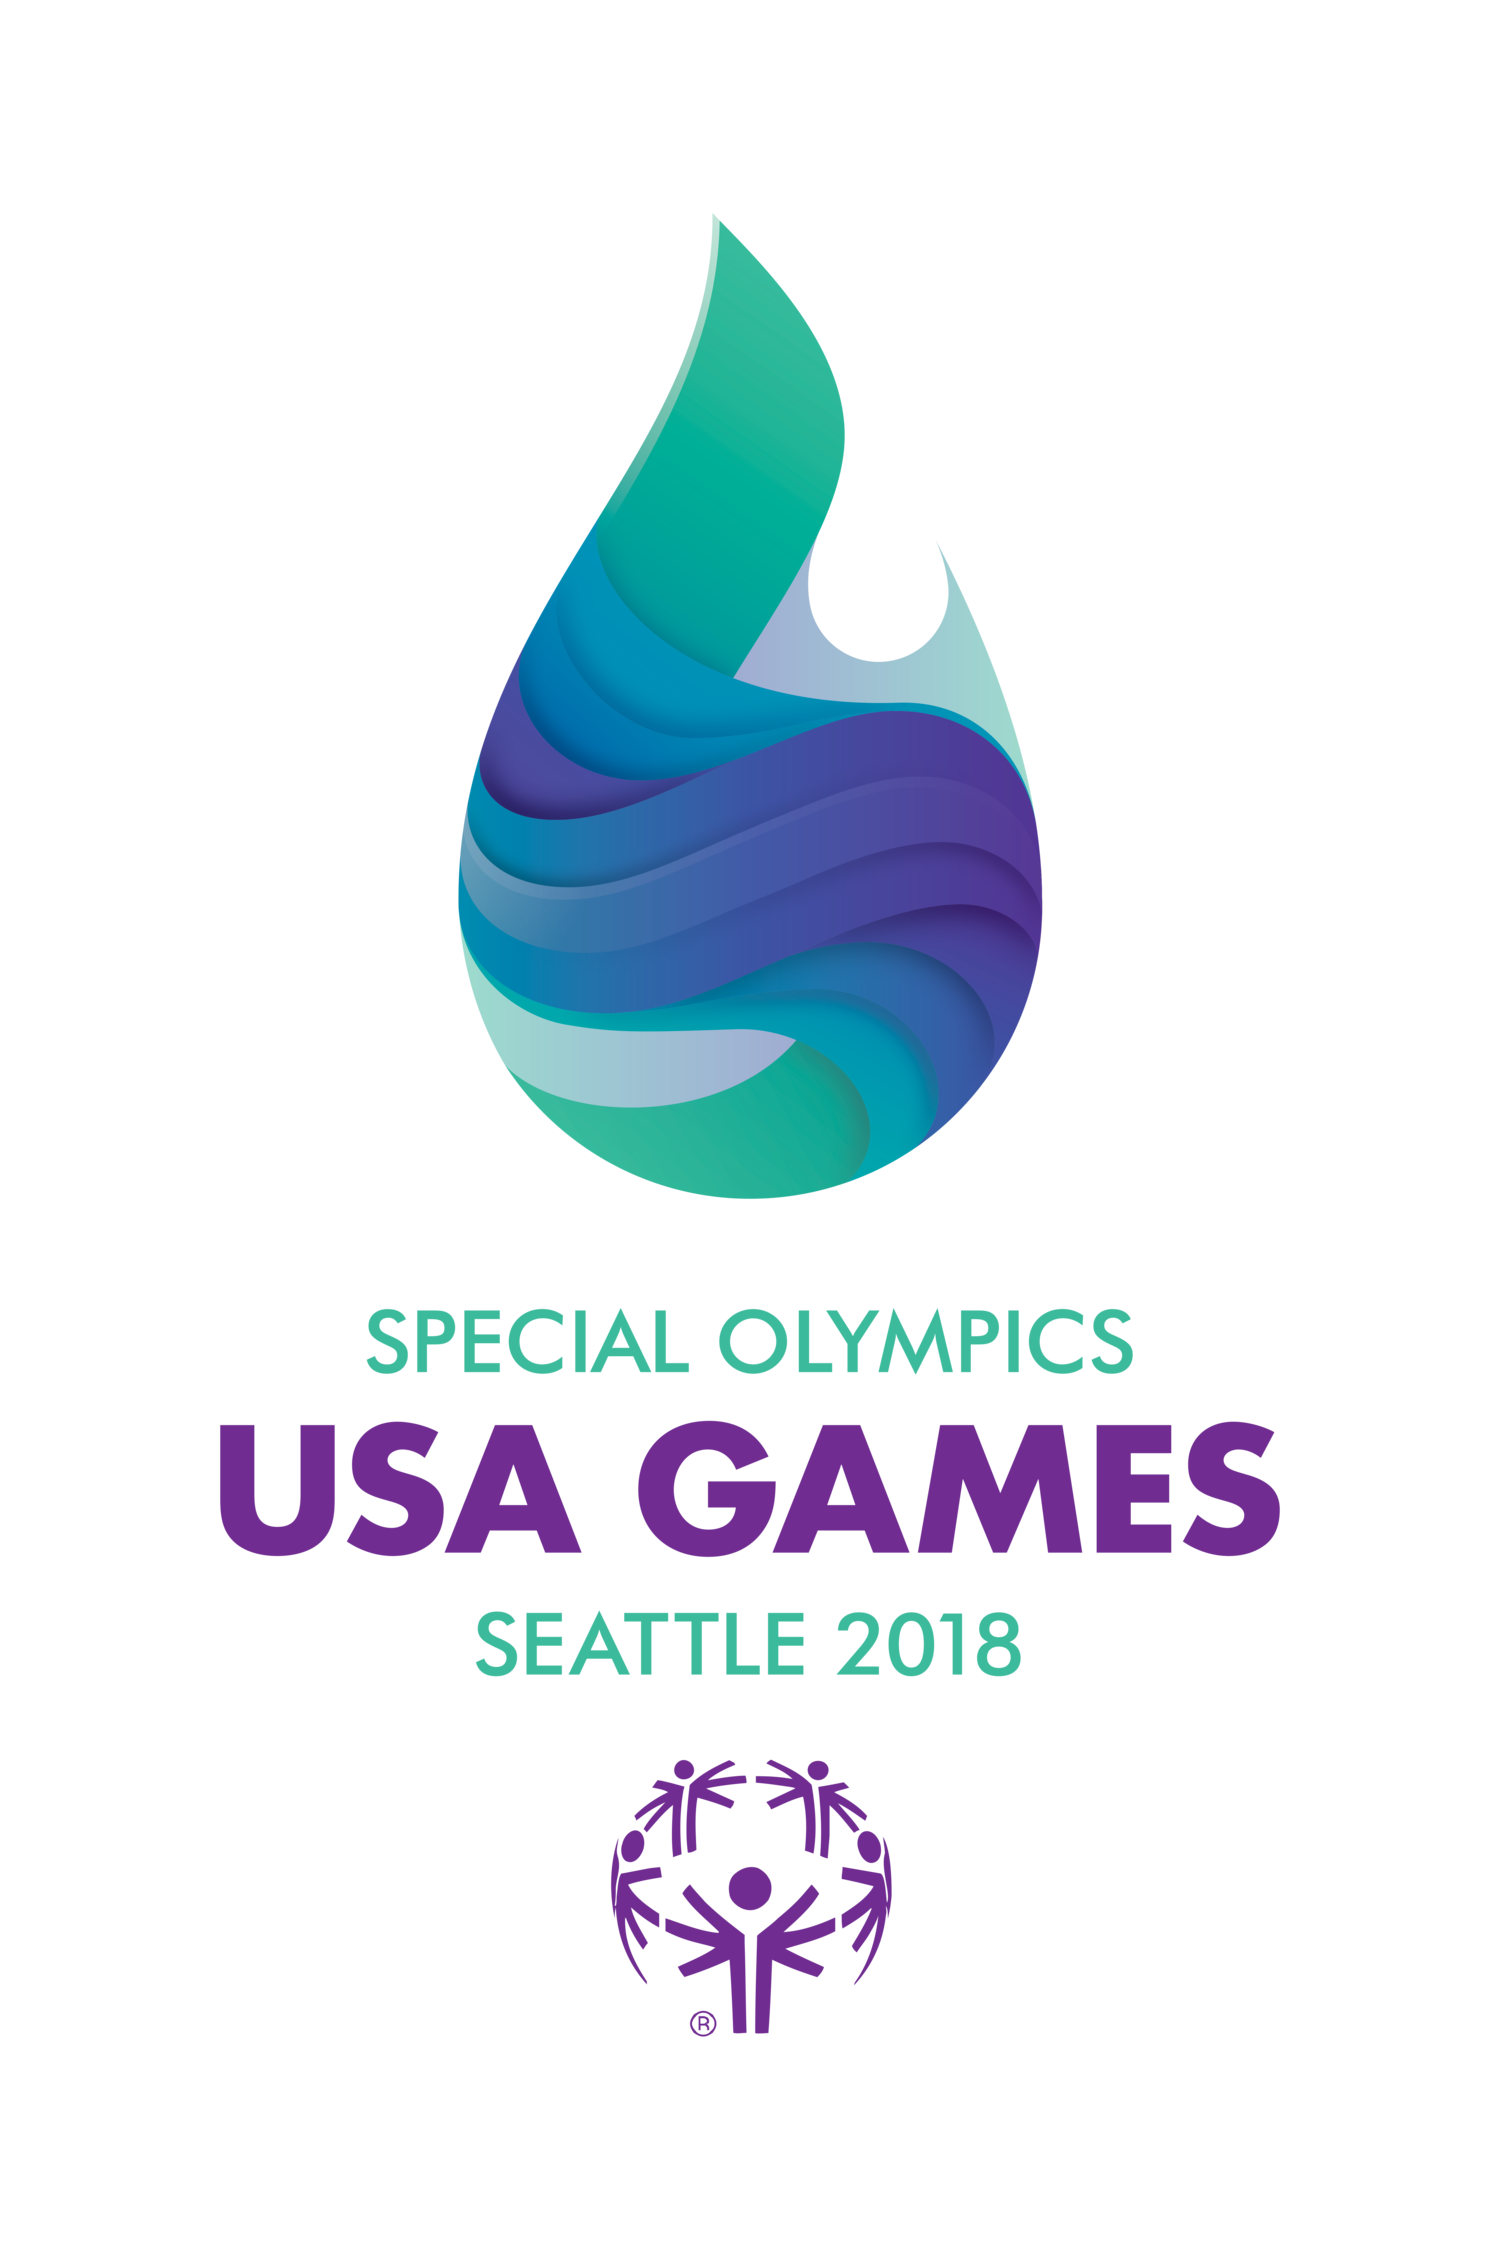 The special usa will. Game clipart olympics games